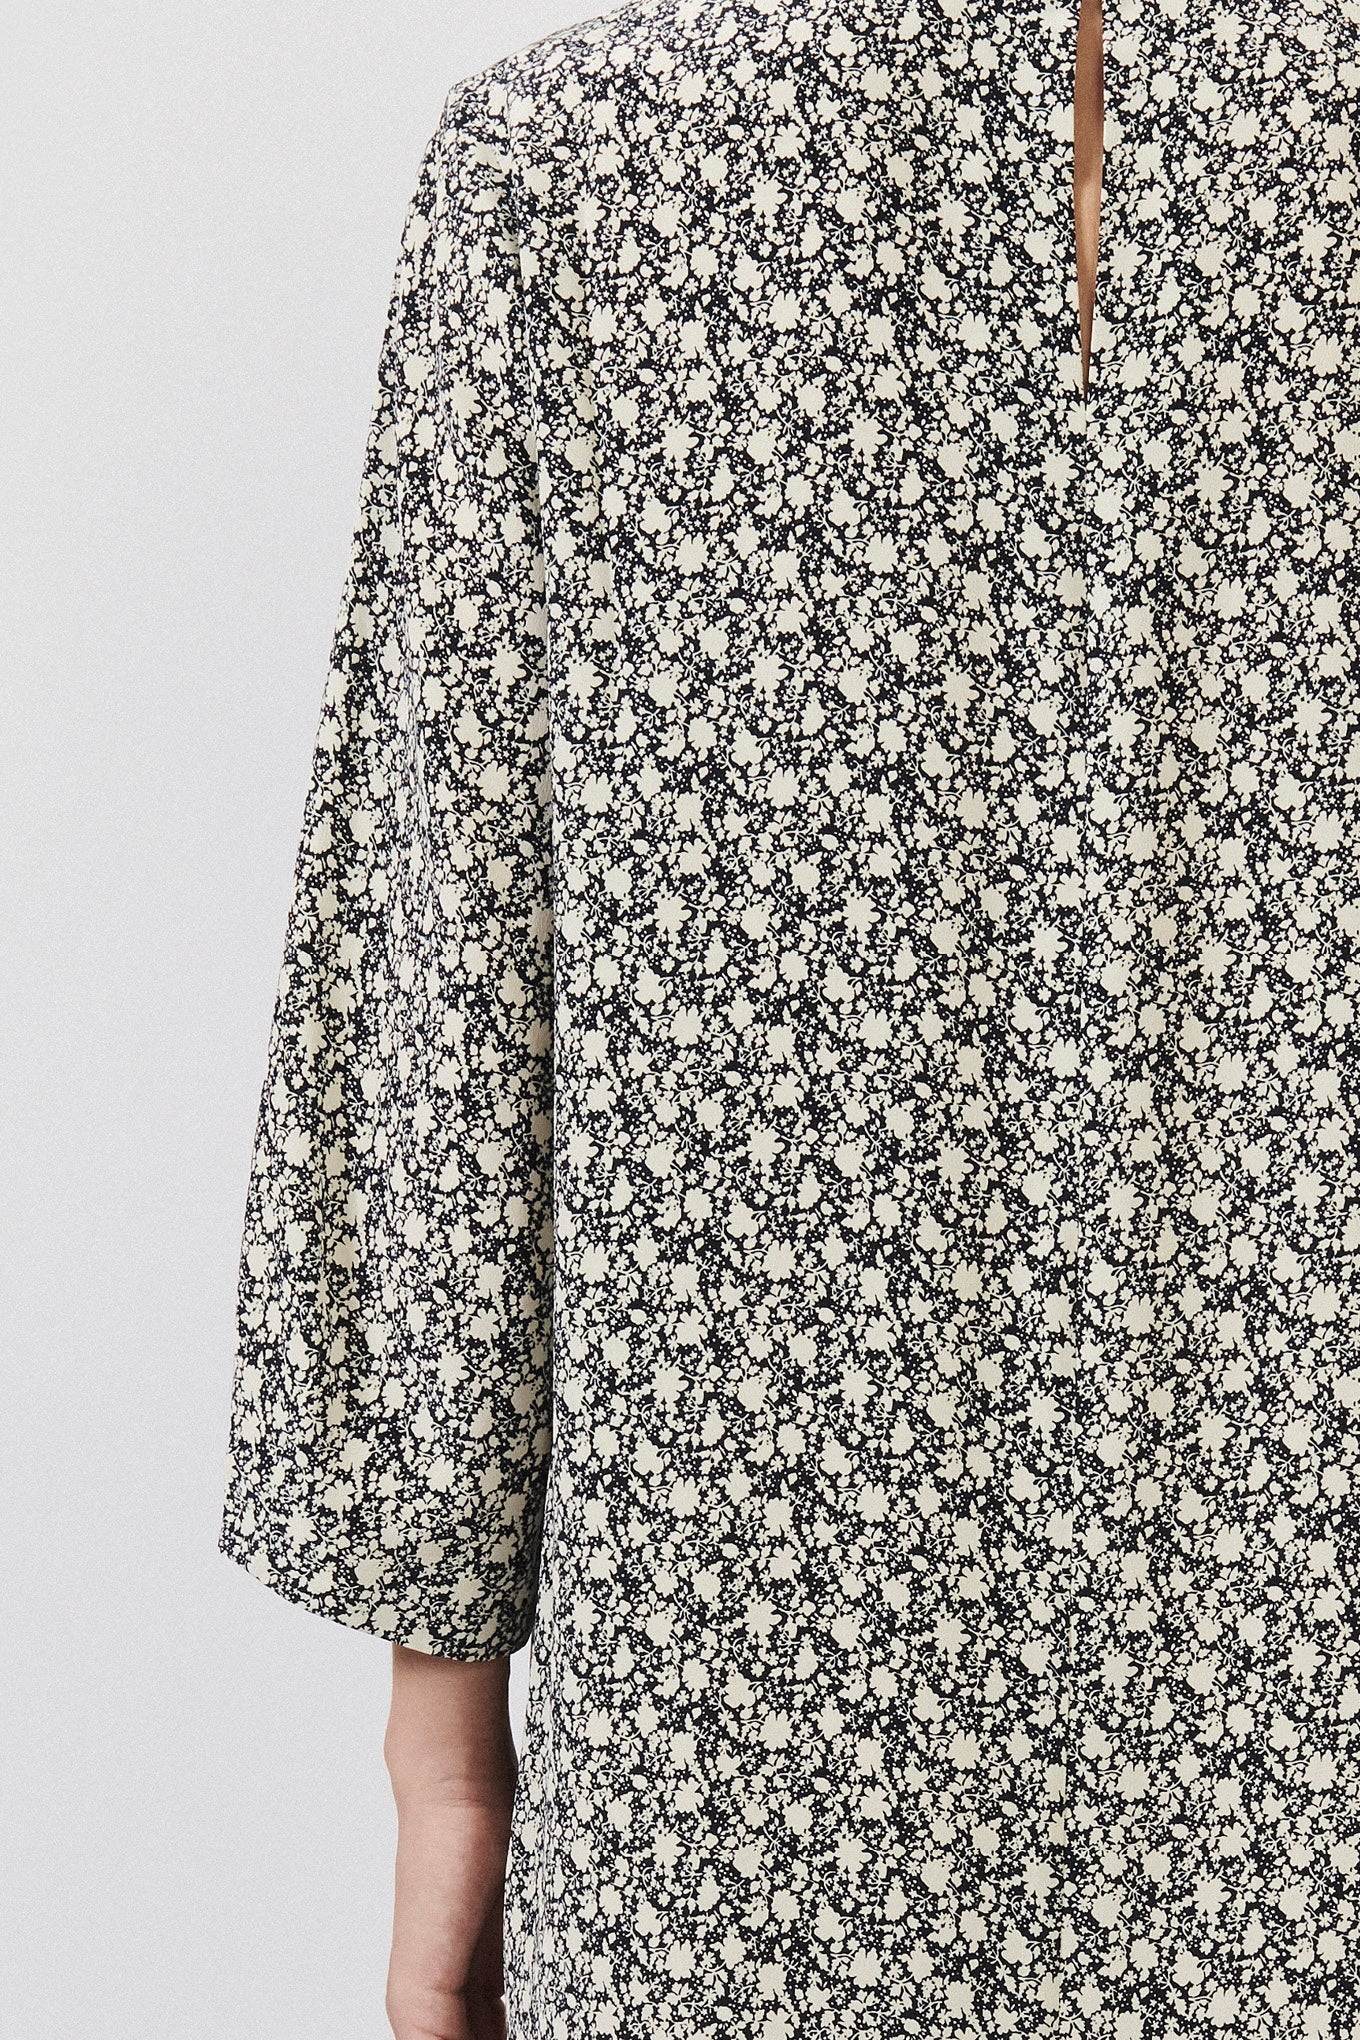 CORA DRESS - MINI FLOWER PRINT